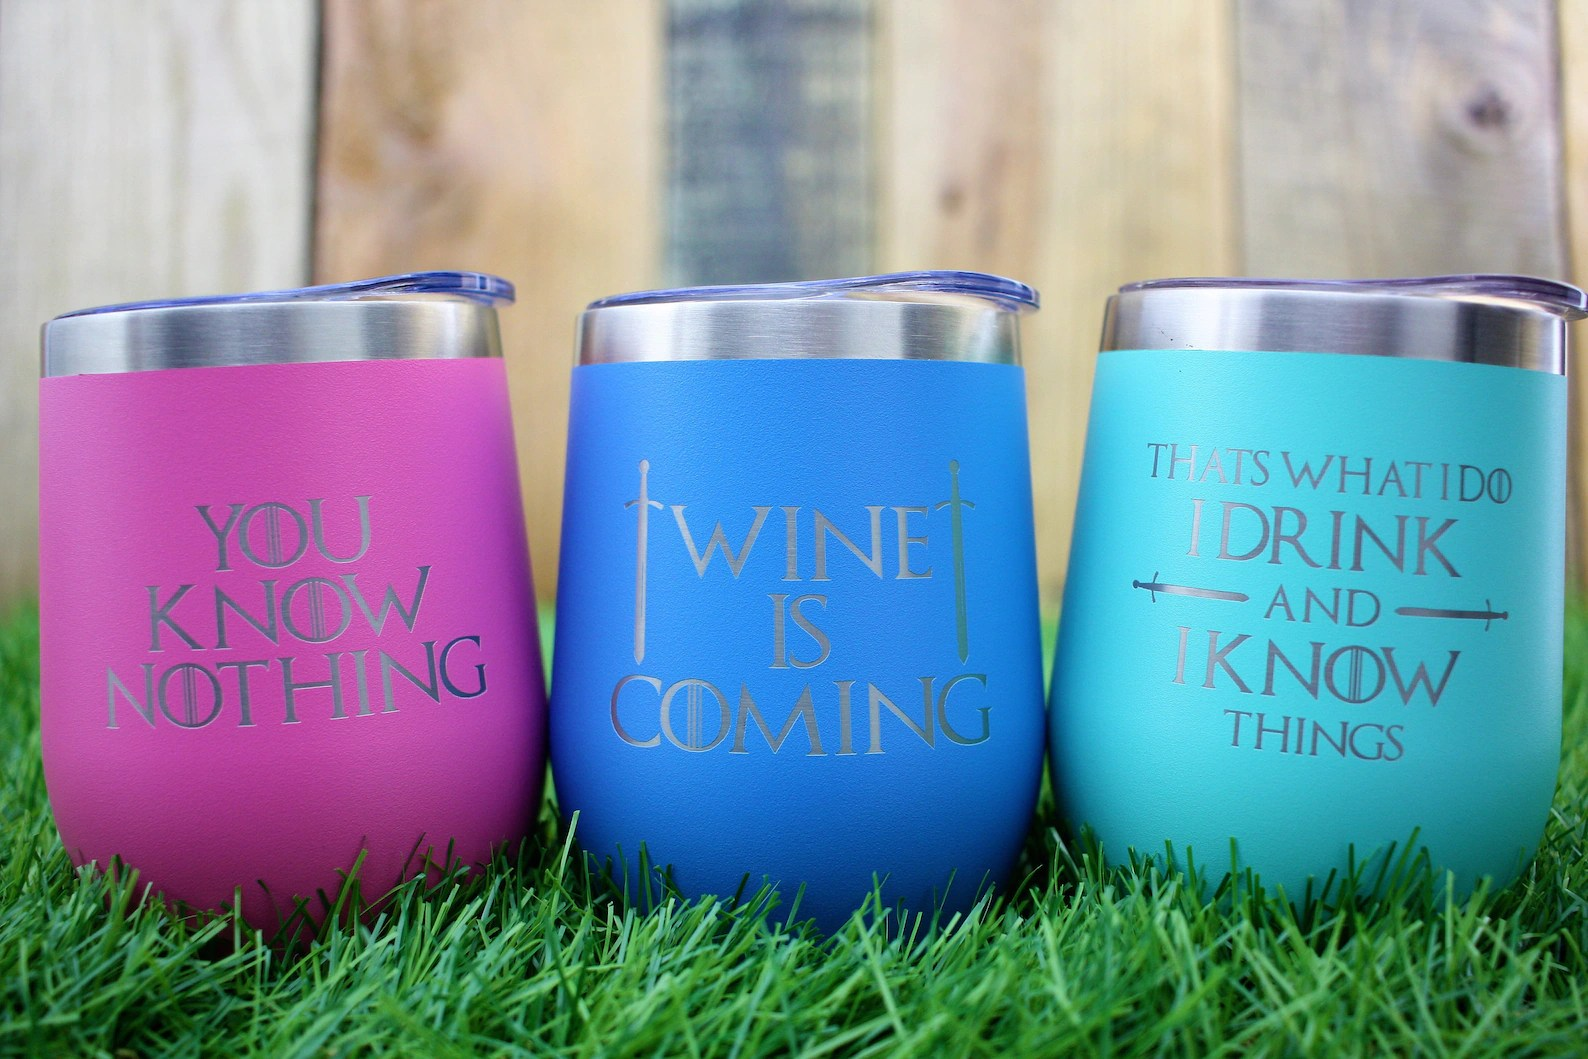 Game of Thrones cups. That's what I do. I drink and I know things - You know Nothing Jon Snow and Wine is Coming.